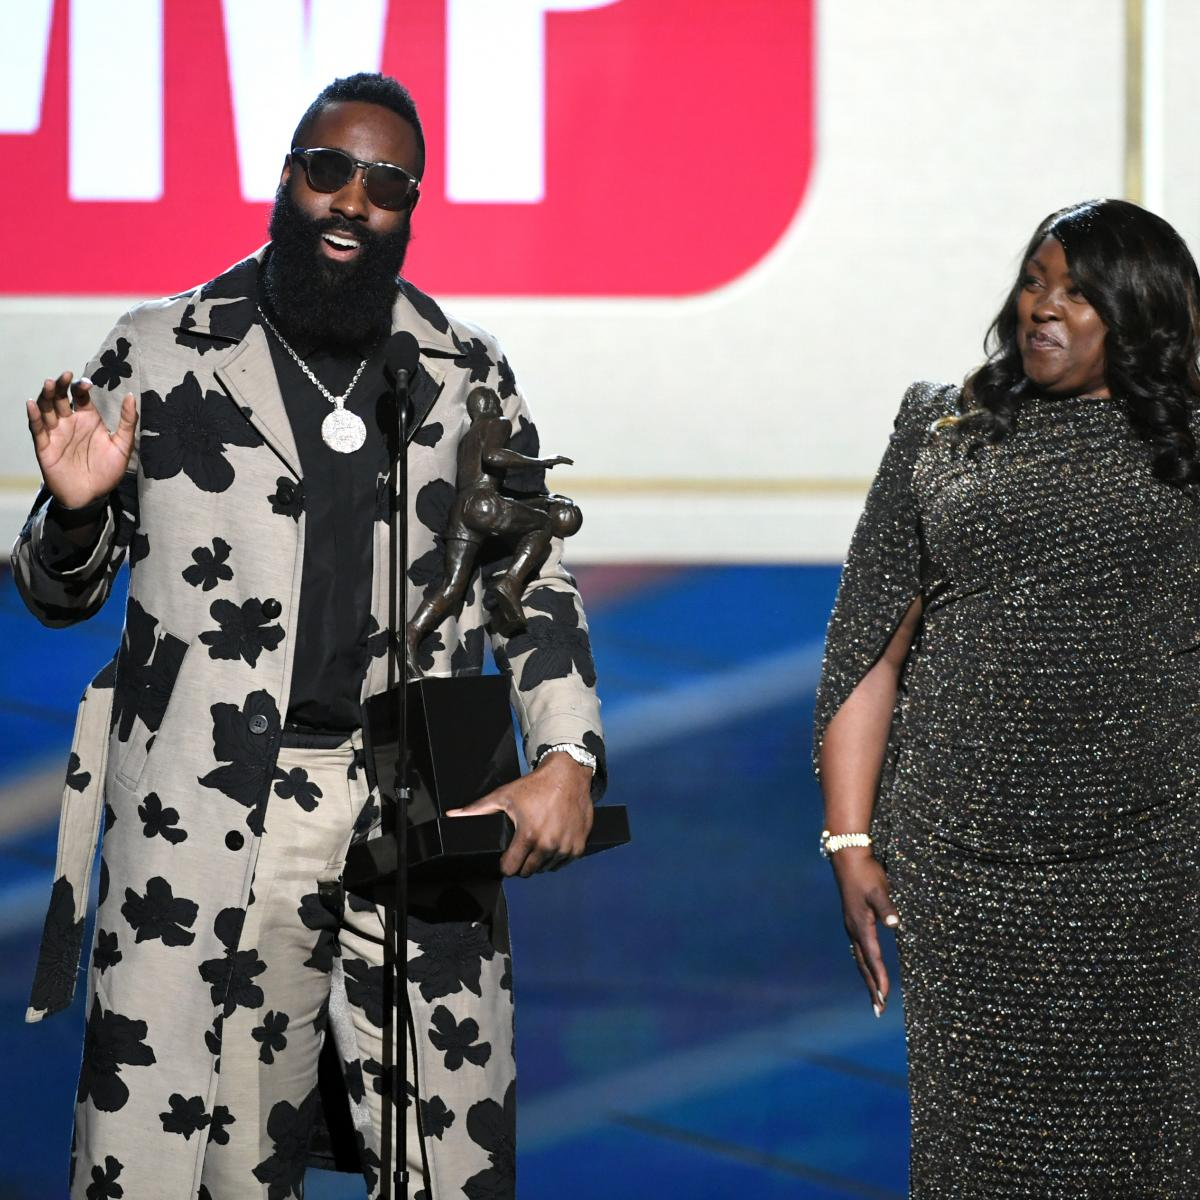 James Harden Quadruple Team: James Harden's Mom Doesn't Have Time For NBA Trolls, Money